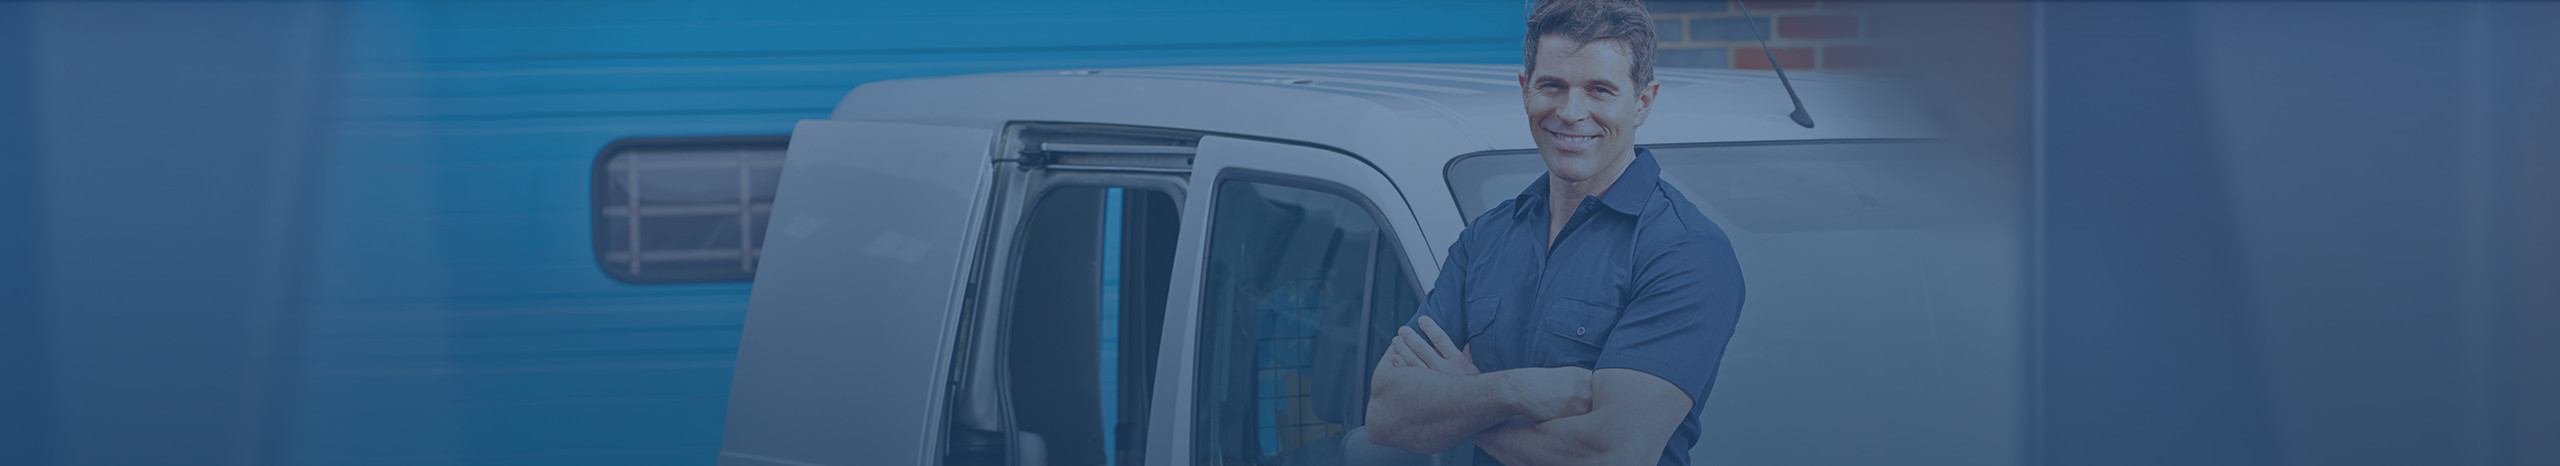 Plumber in blue shirt leaning against van with arms crossed smiling